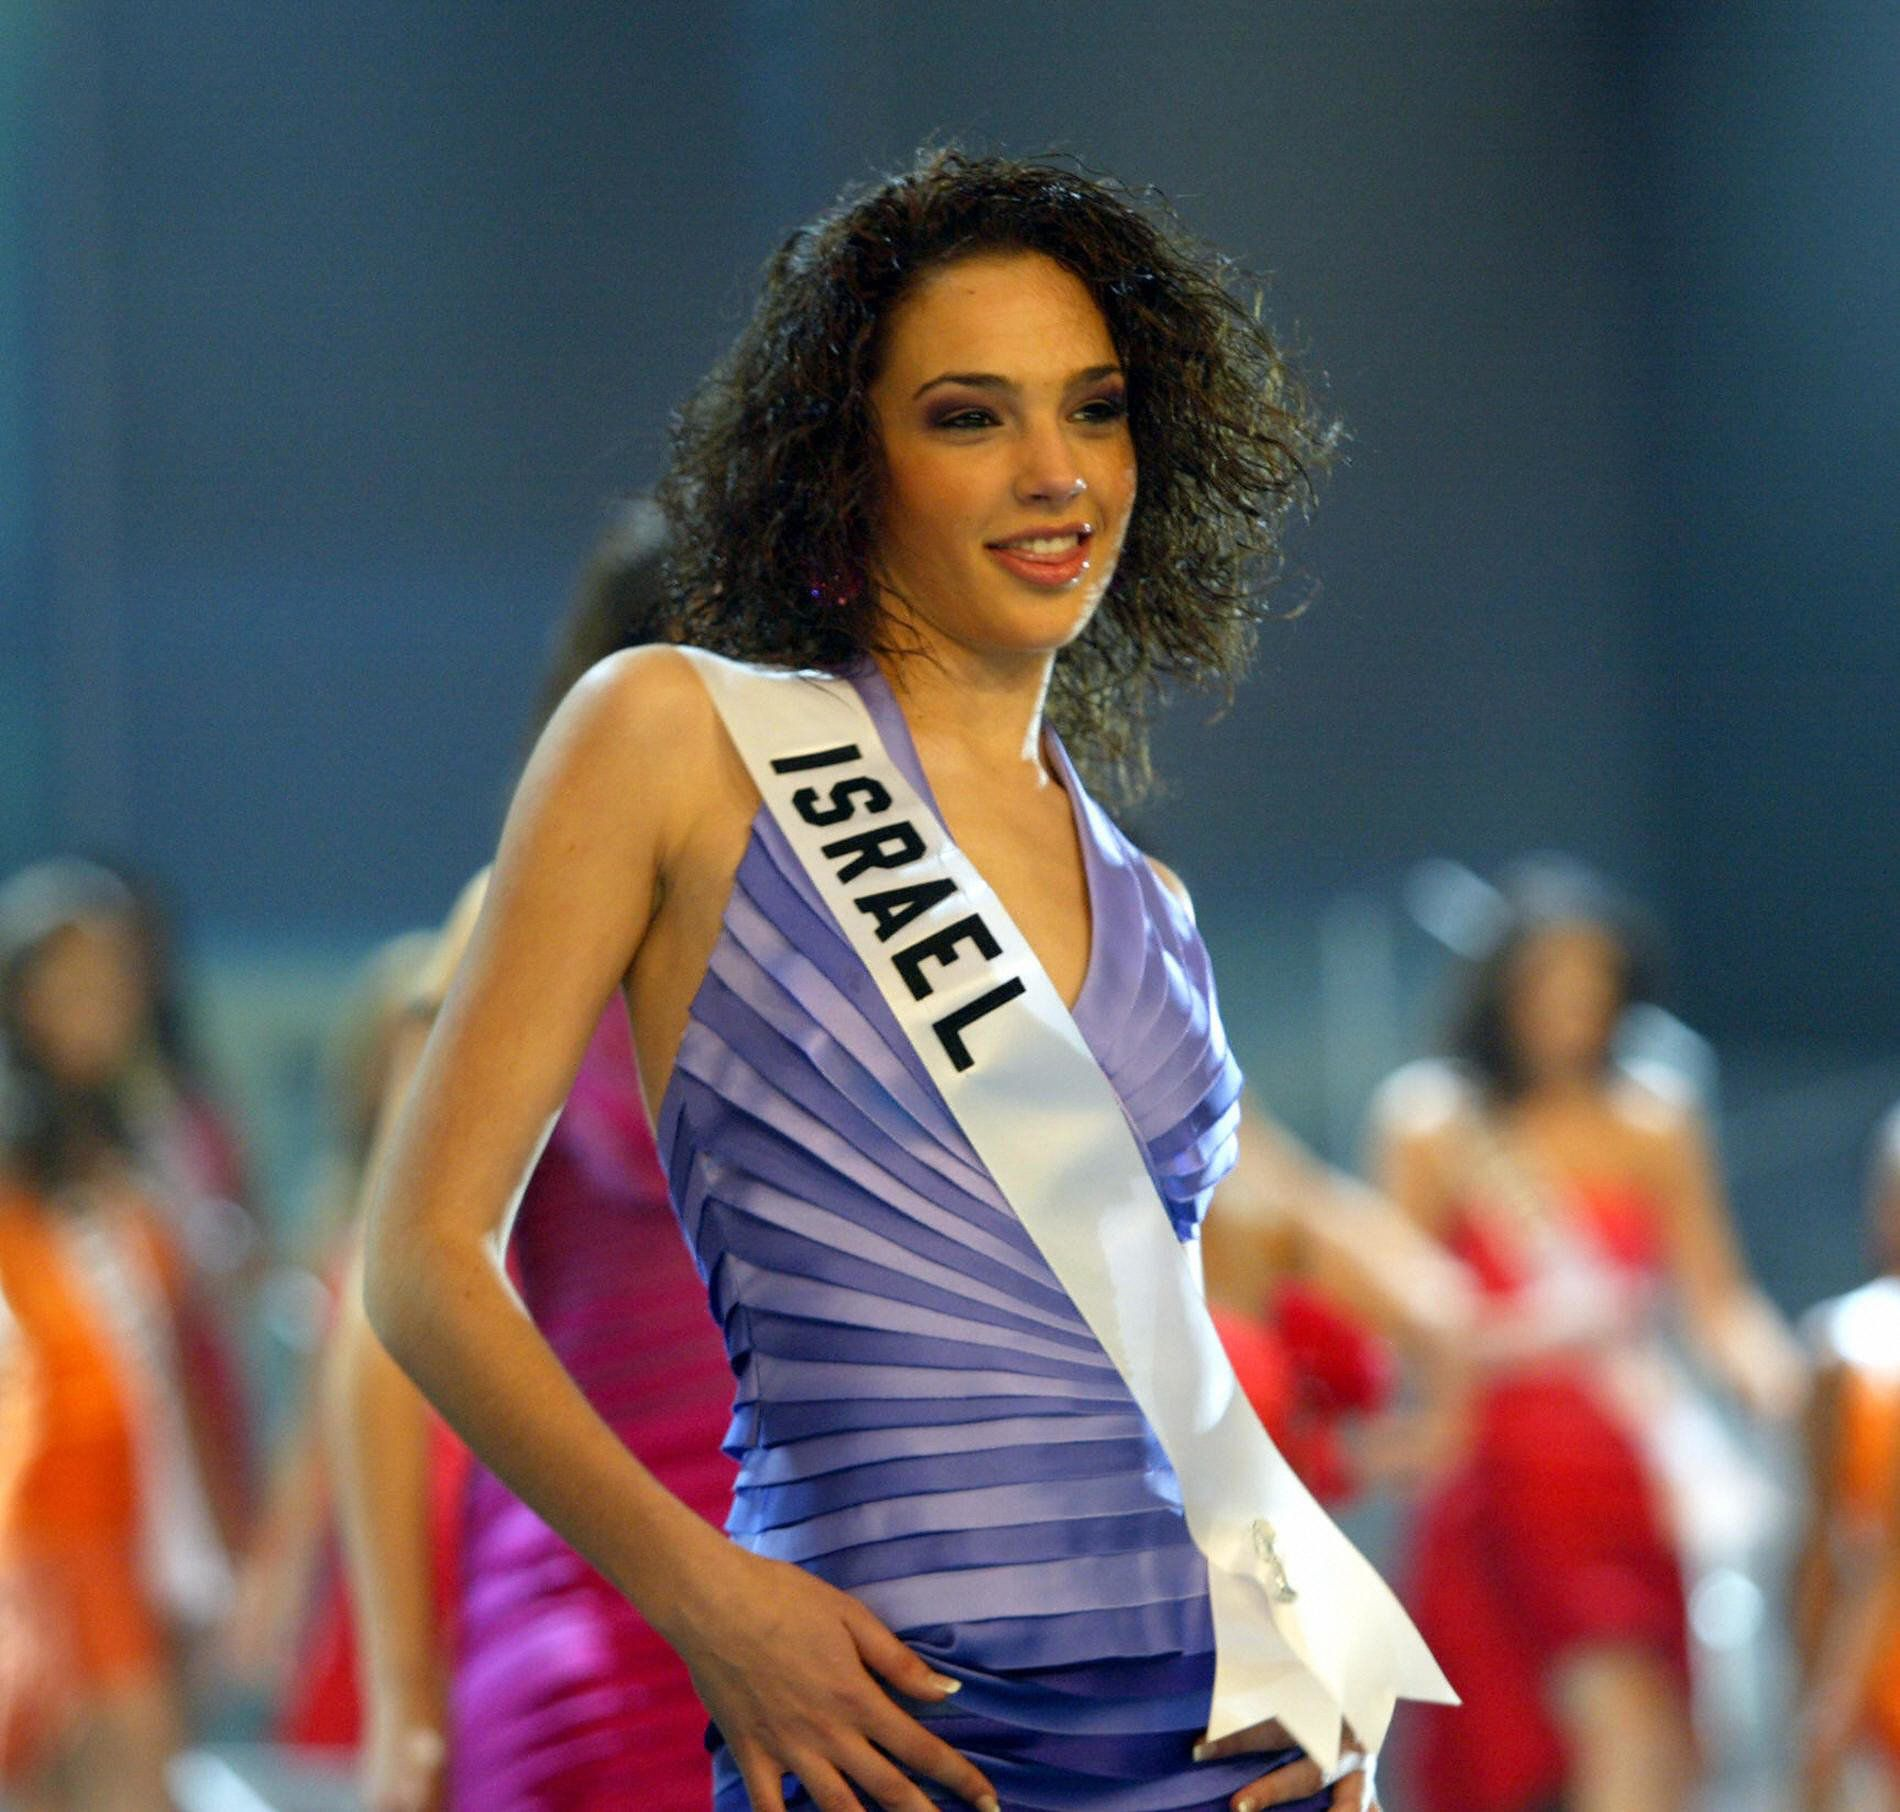 At the Miss Universe pageant.